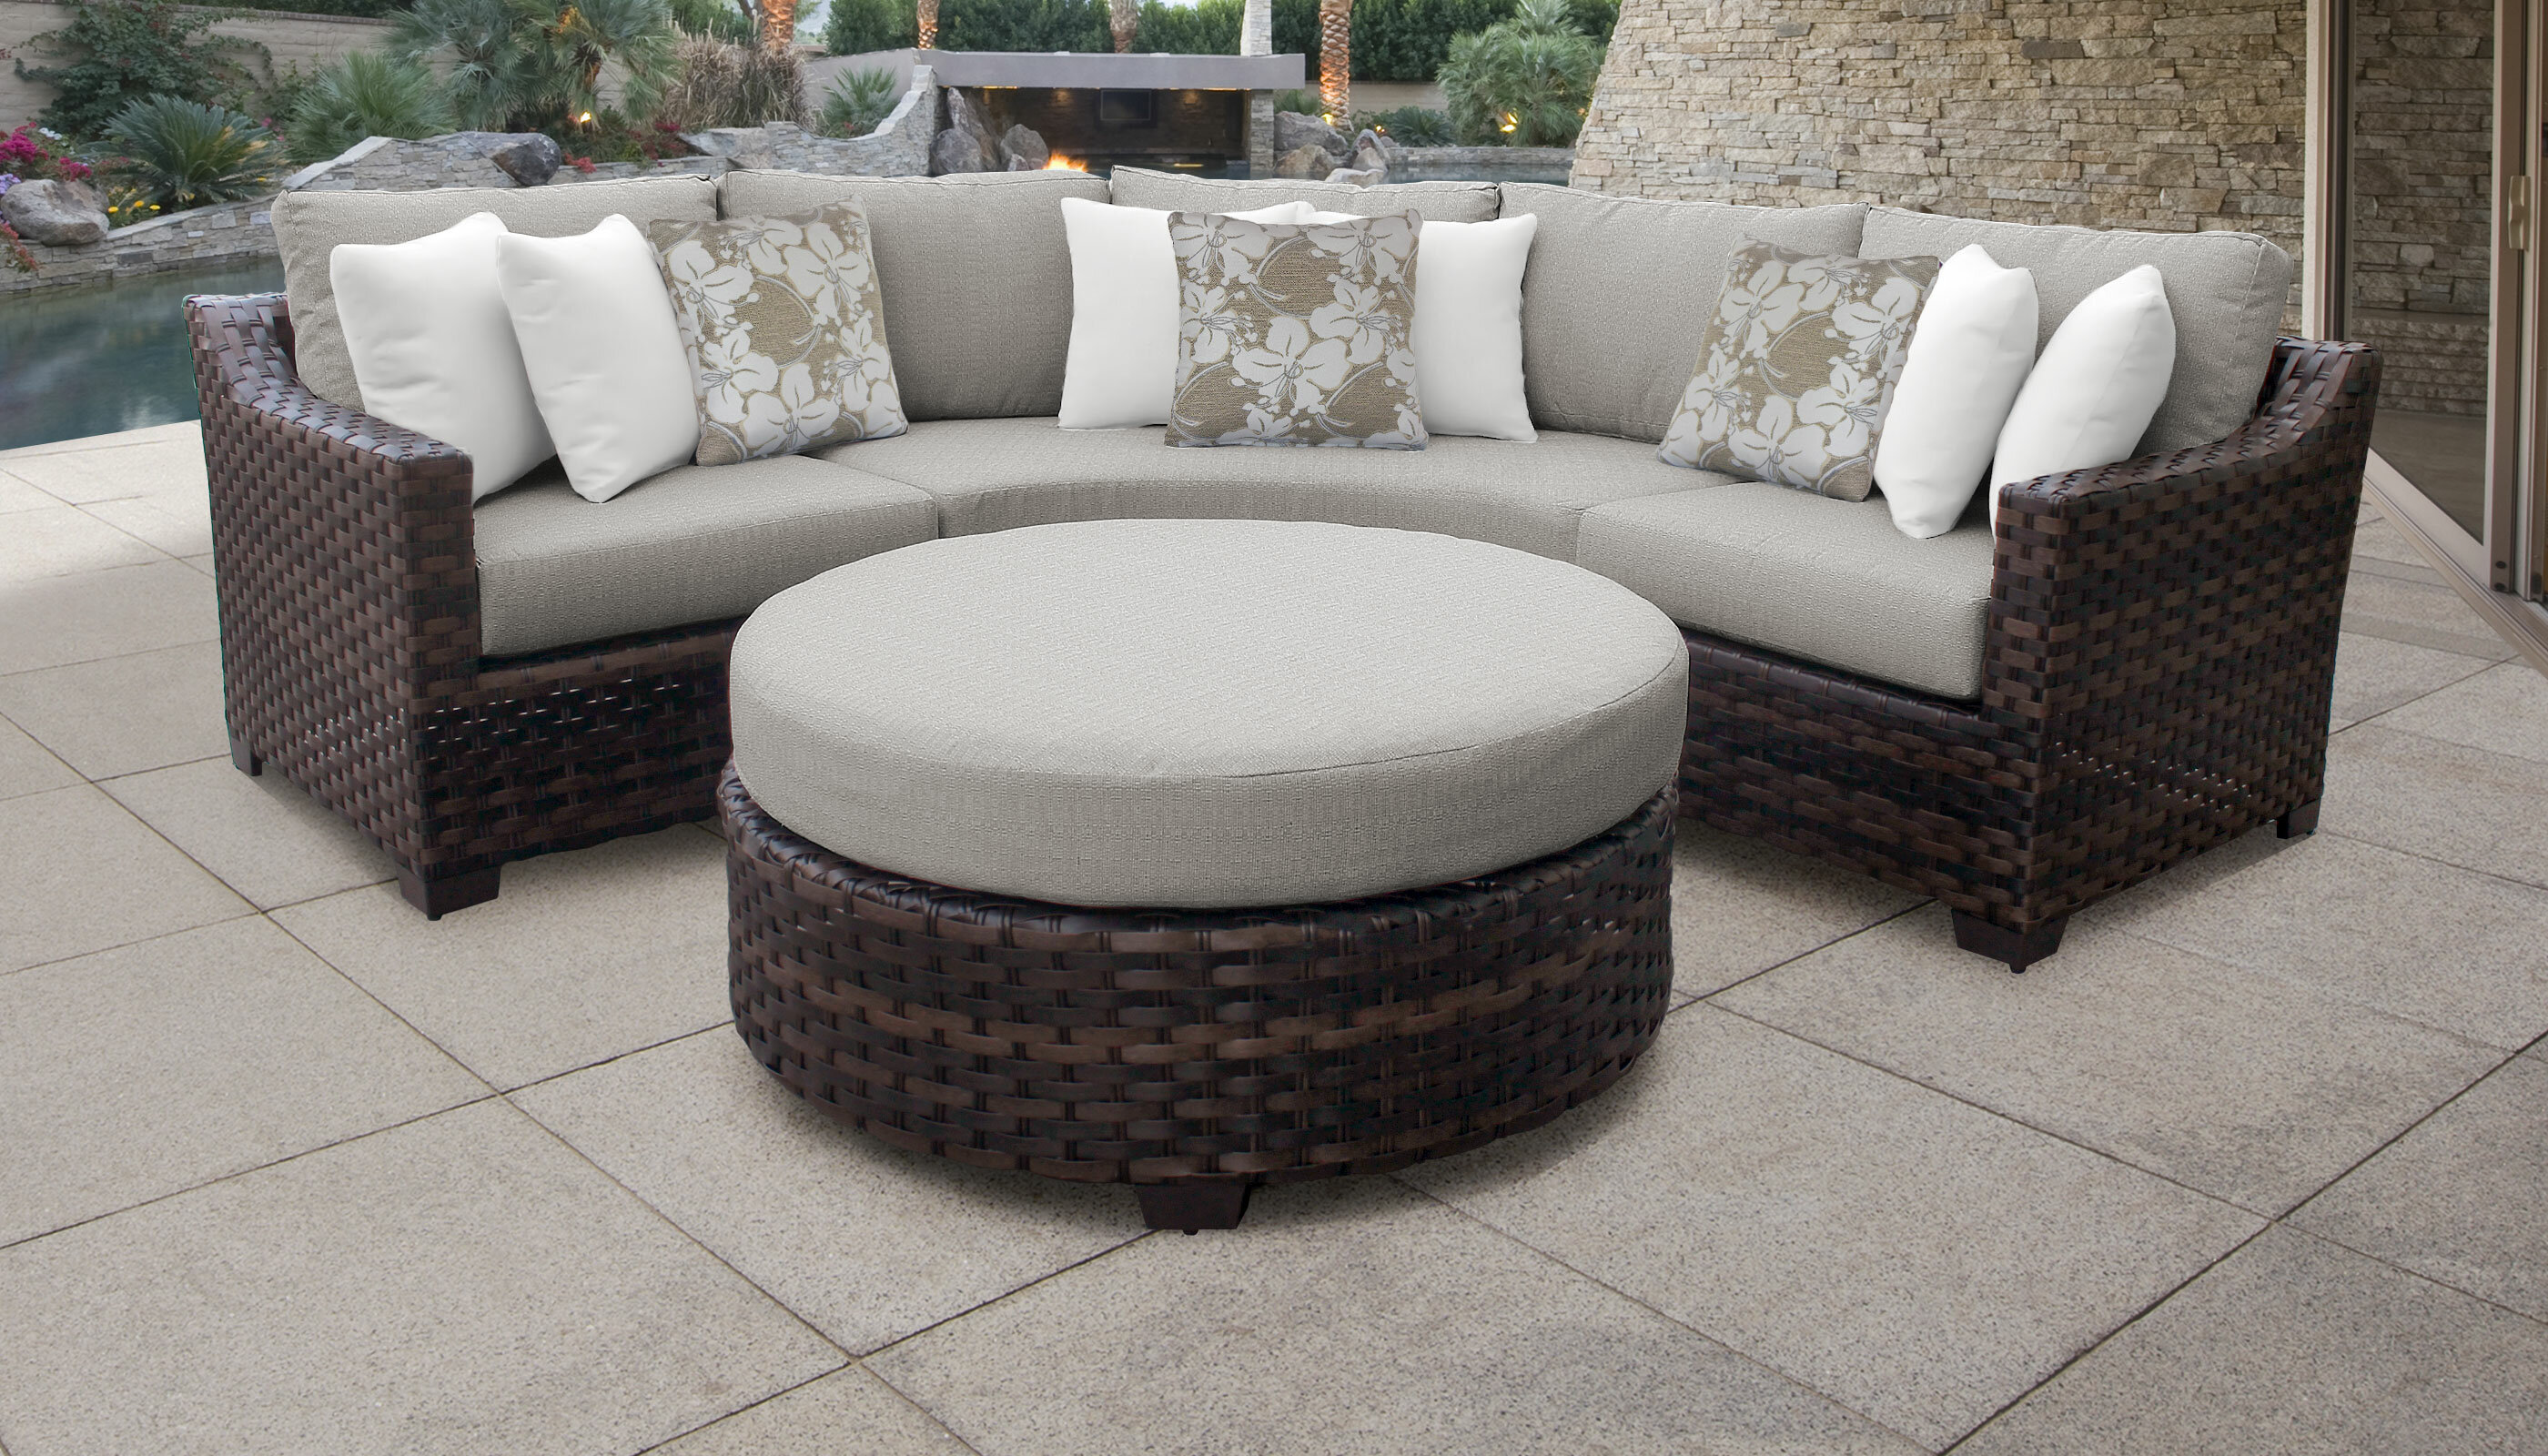 Kathy Ireland Homes Gardens By Tk Classics River Brook 4 Piece Outdoor Rattan Sectional Seating Group With Cushions Reviews Wayfair